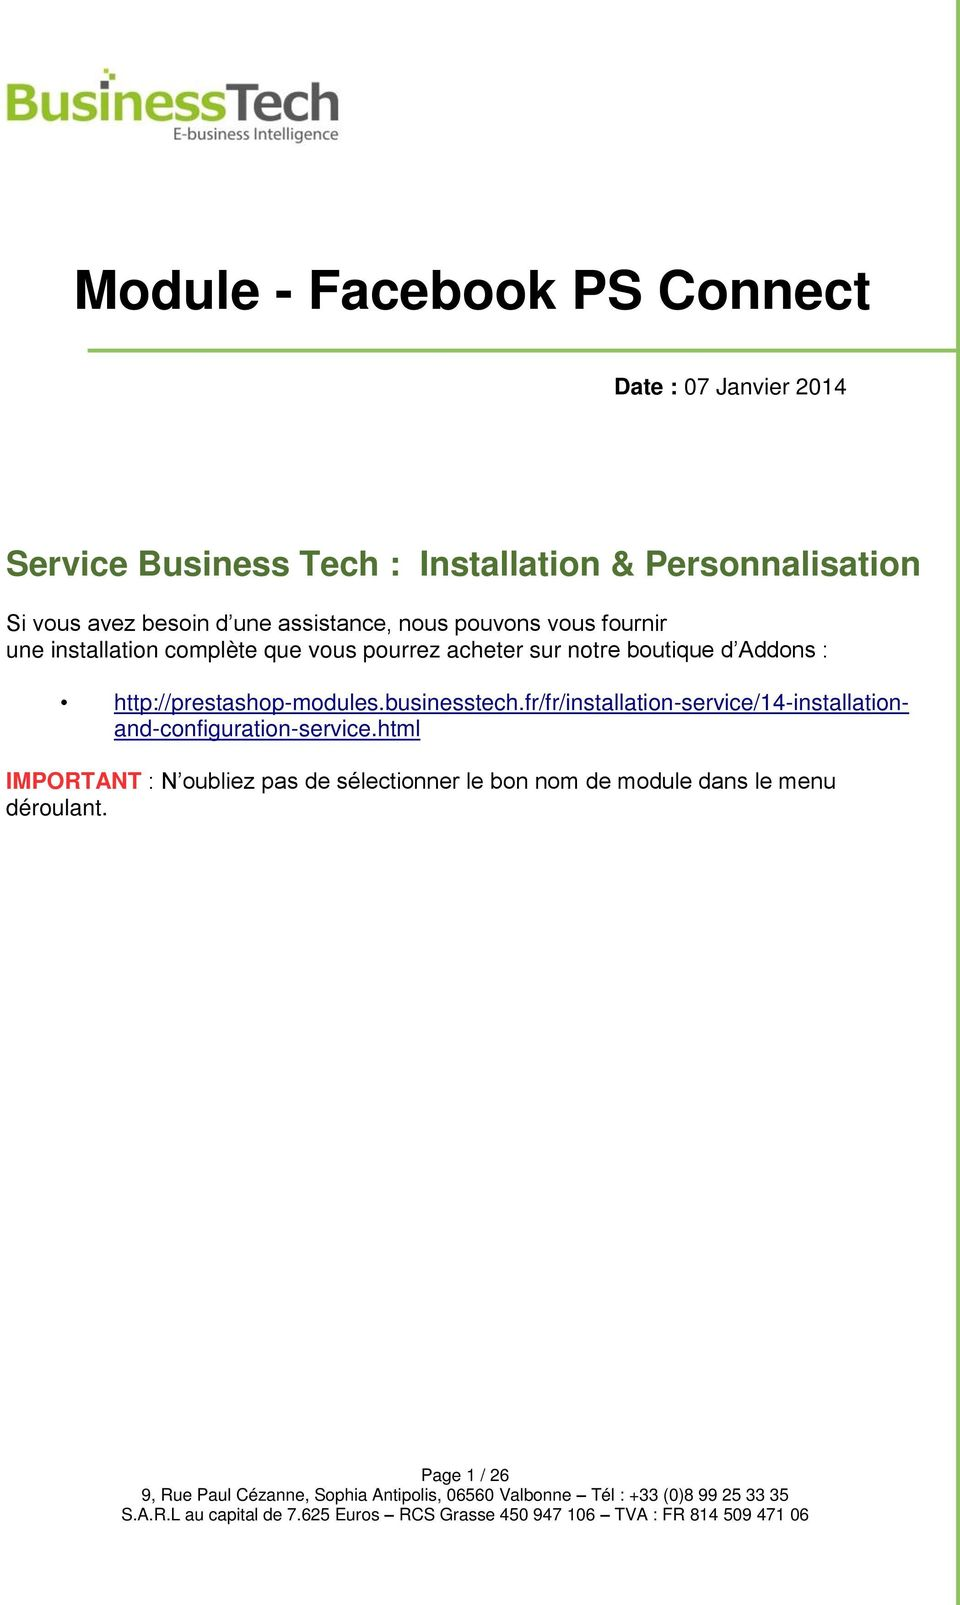 notre boutique d Addons : http://prestashop-modules.businesstech.